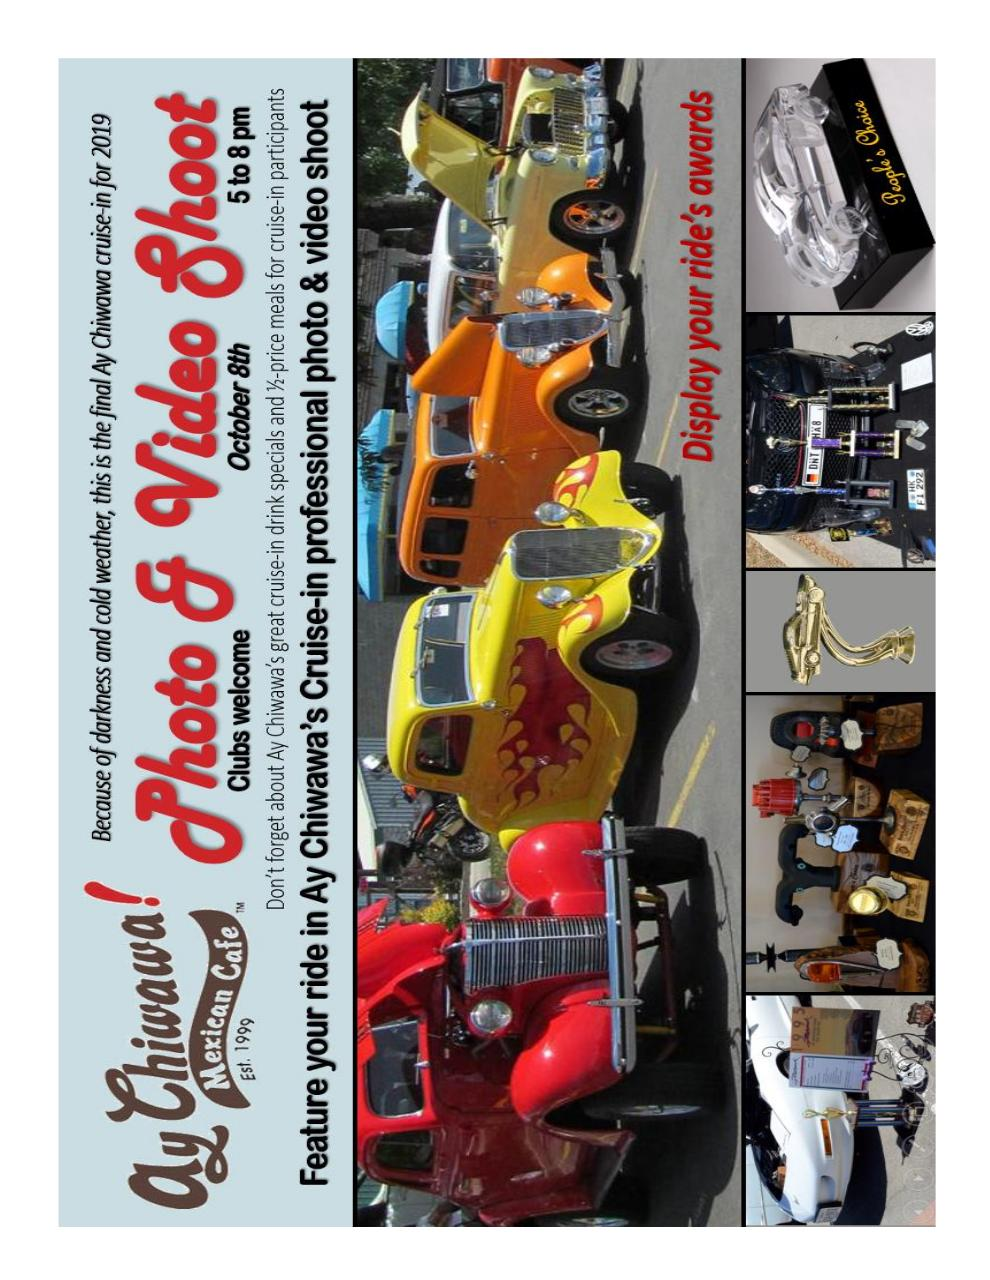 2019 10 Cruise-in flyer.pdf - page 4/4